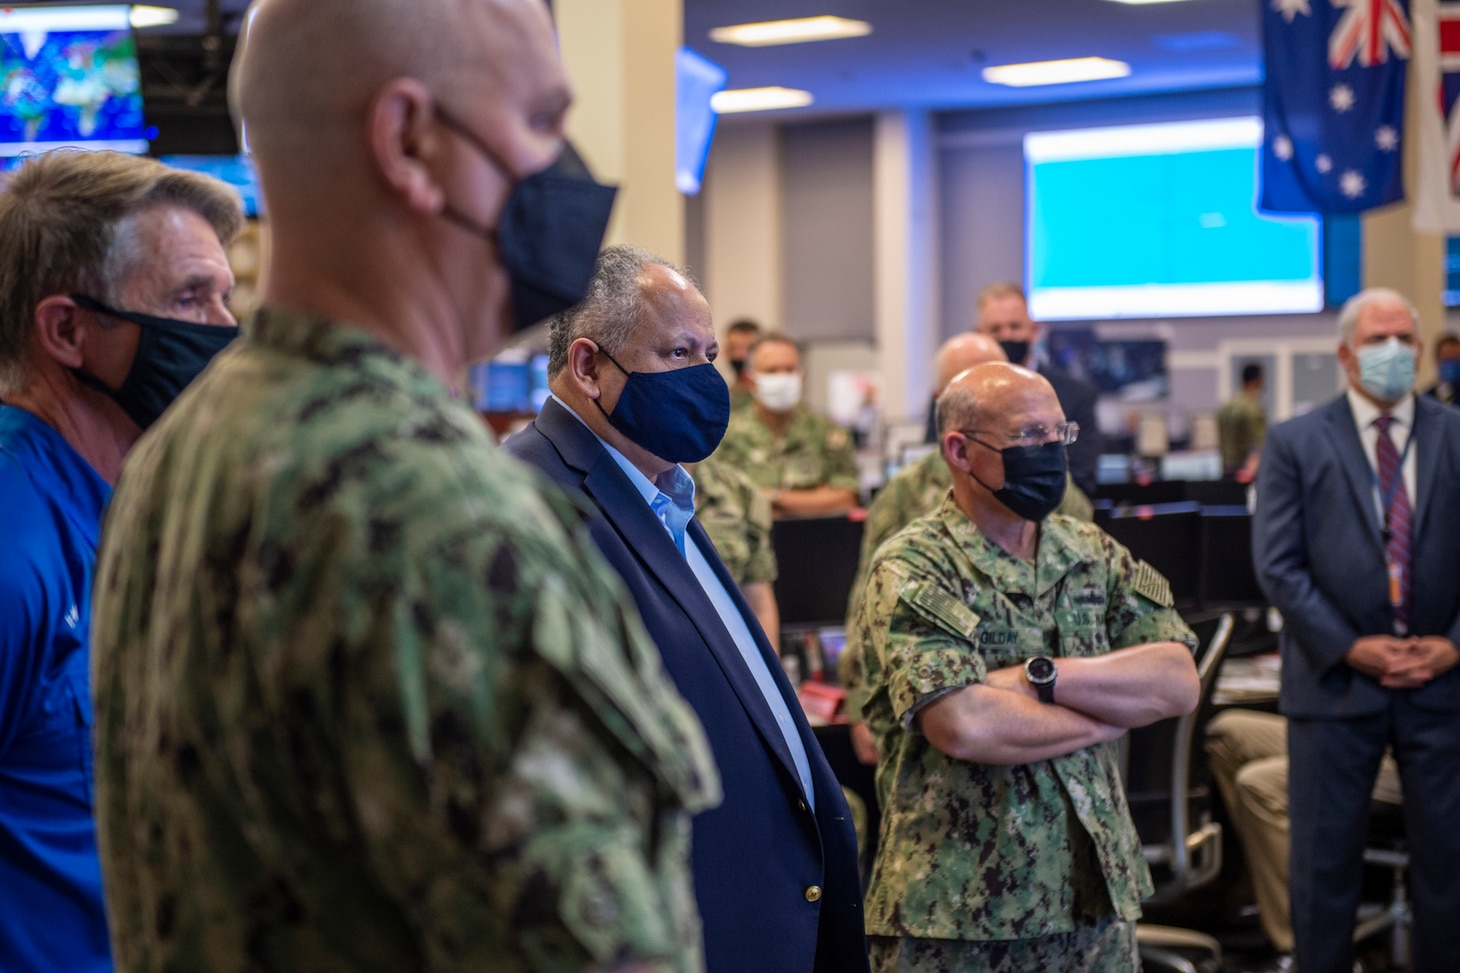 Adm. Christopher W. Grady, commander, U.S. Fleet Forces Command, center left, Secretary of the Navy Carlos Del Toro, center, Chief of Naval Operations Adm. Mike Gilday, and Virginia Representative Rob Wittman receive a brief at the Naval Warfare Development Command during Large Scale Exercise (LSE) 2021 in Adm. Christopher W. Grady, commander, U.S. Fleet Forces Command, center left, Secretary of the Navy Carlos Del Toro, center, Chief of Naval Operations Adm. Mike Gilday, and Virginia Representative Rob Wittman receive a brief at the Naval Warfare Development Command during Large Scale Exercise (LSE) 2021 in Norfolk, Va., August 10, 2021.